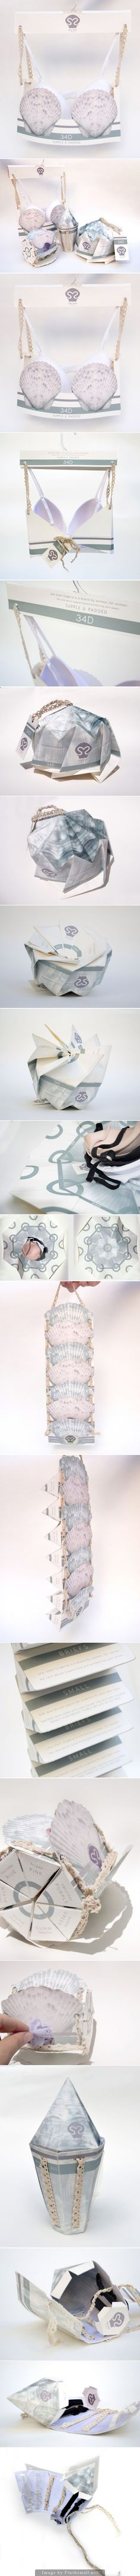 This She Shell lingerie student concept packaging is so creative and unique curated by Packaging Diva PD created via http://www.packagingoftheworld.com/2014/09/she-shell-student-project.html